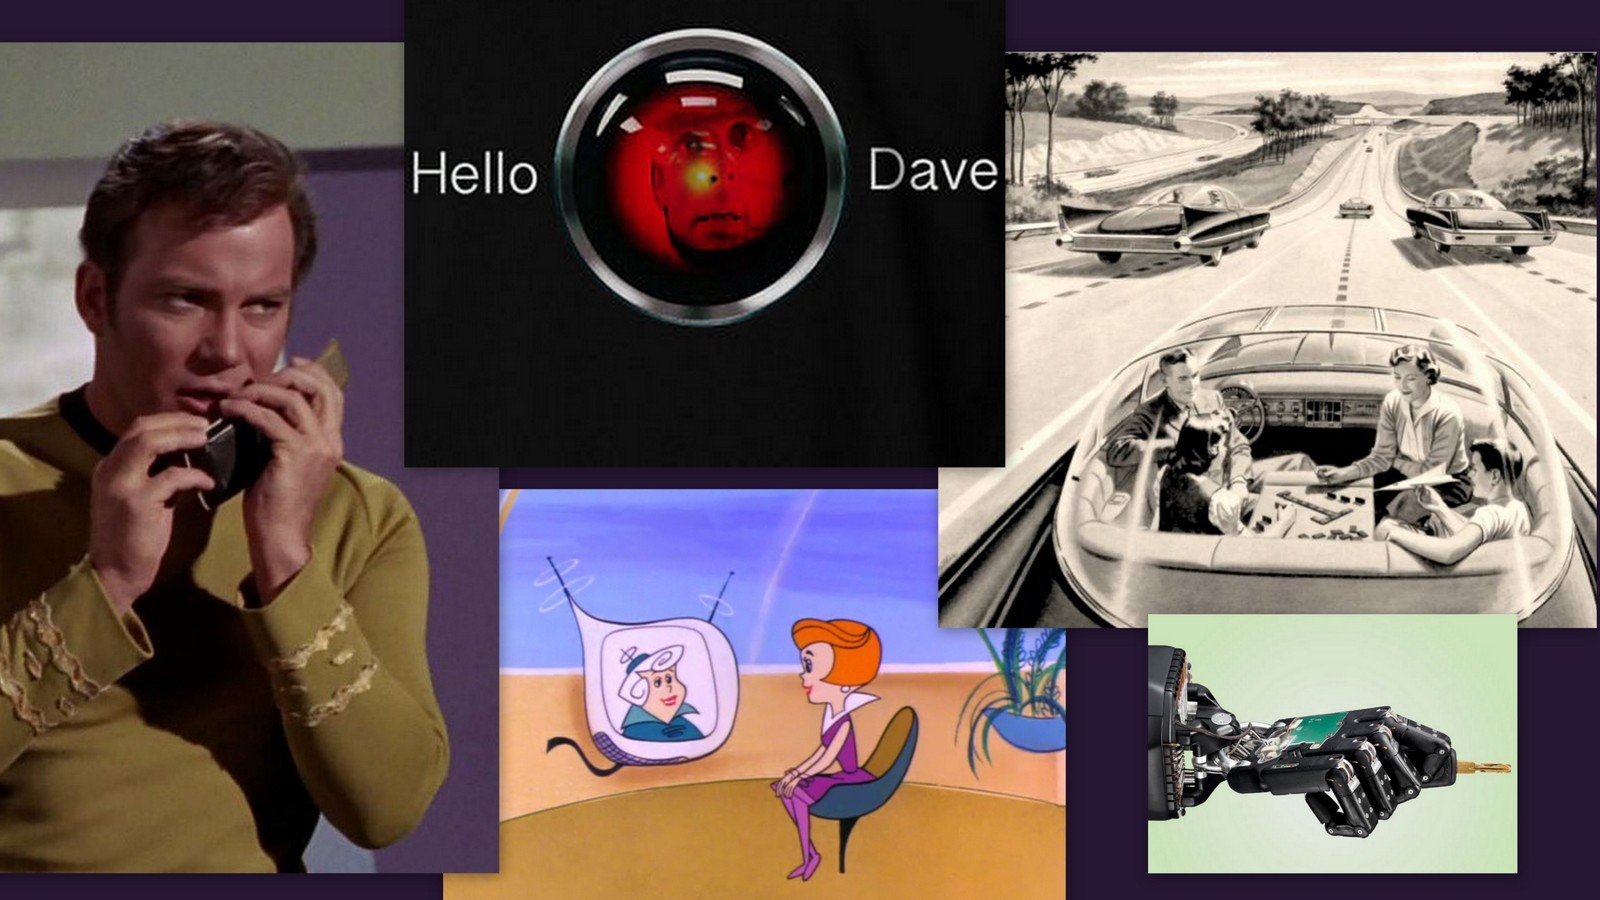 Image: Self-driving cars, the future is now